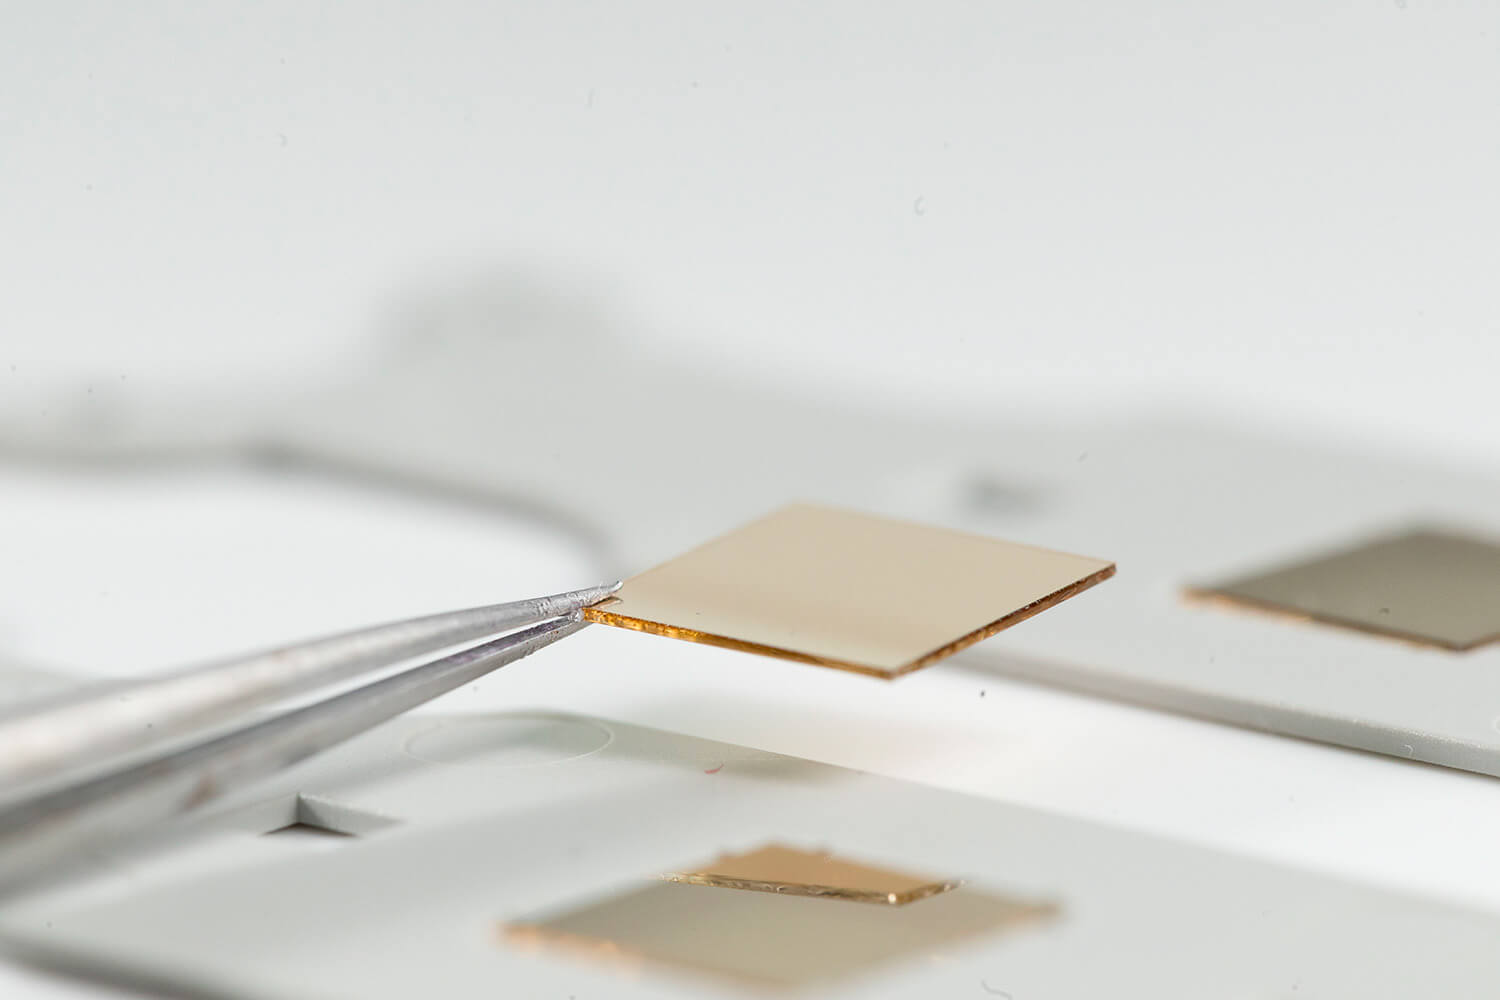 SPR sensor chip with gold layer